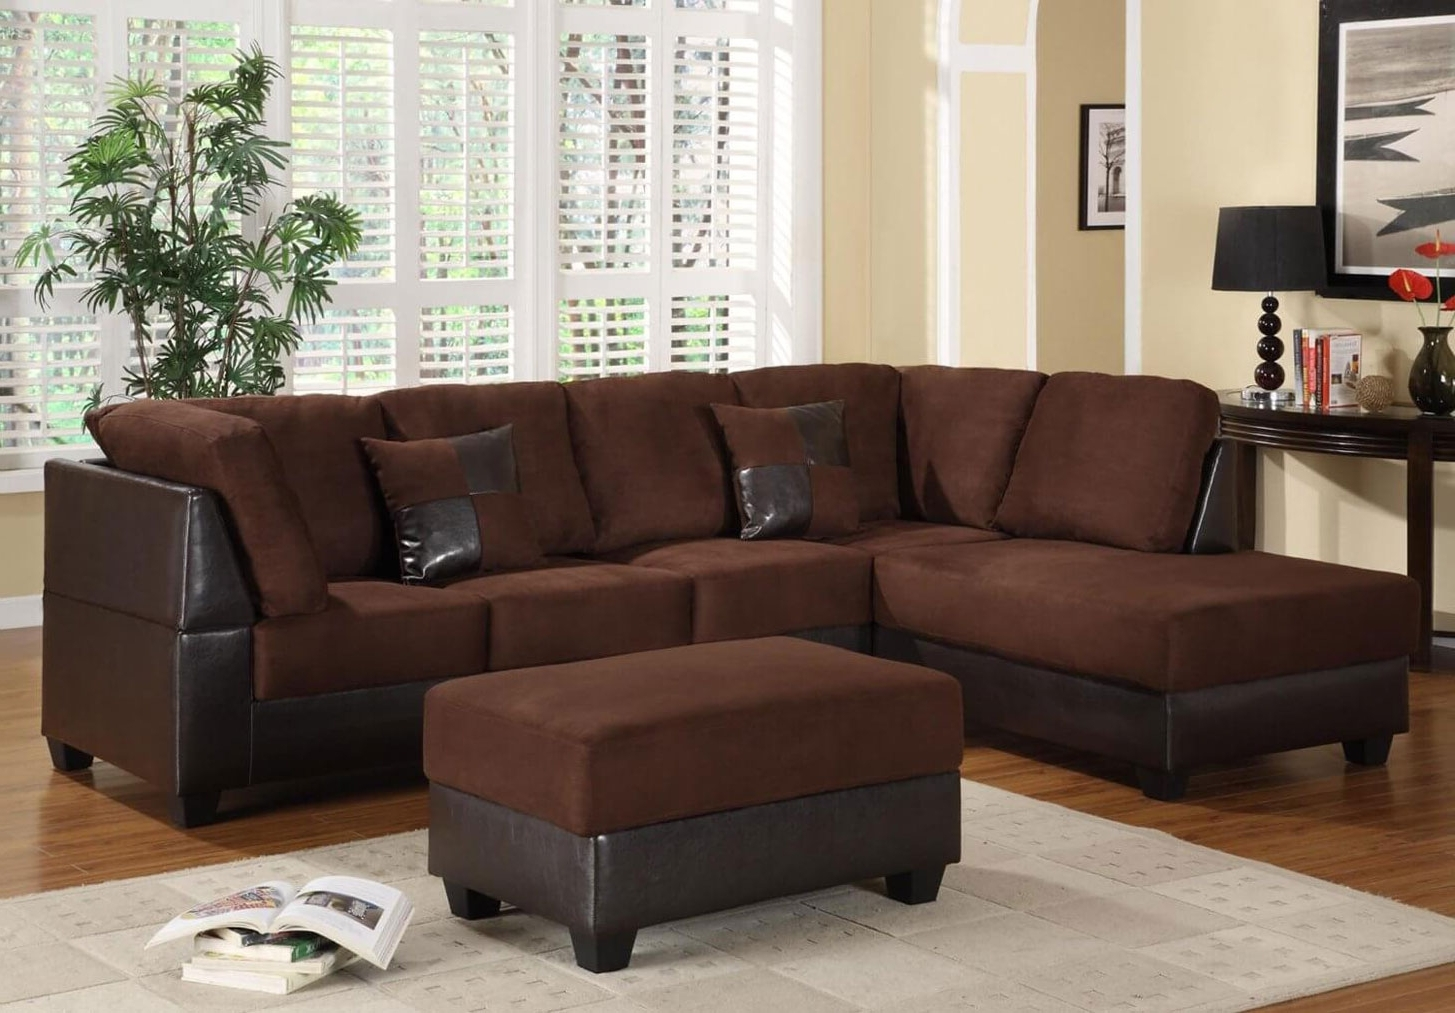 Sectional Sofa: Most Recommended Sectional Sofas Under $1000 Within Newest Halifax Sectional Sofas (View 2 of 15)